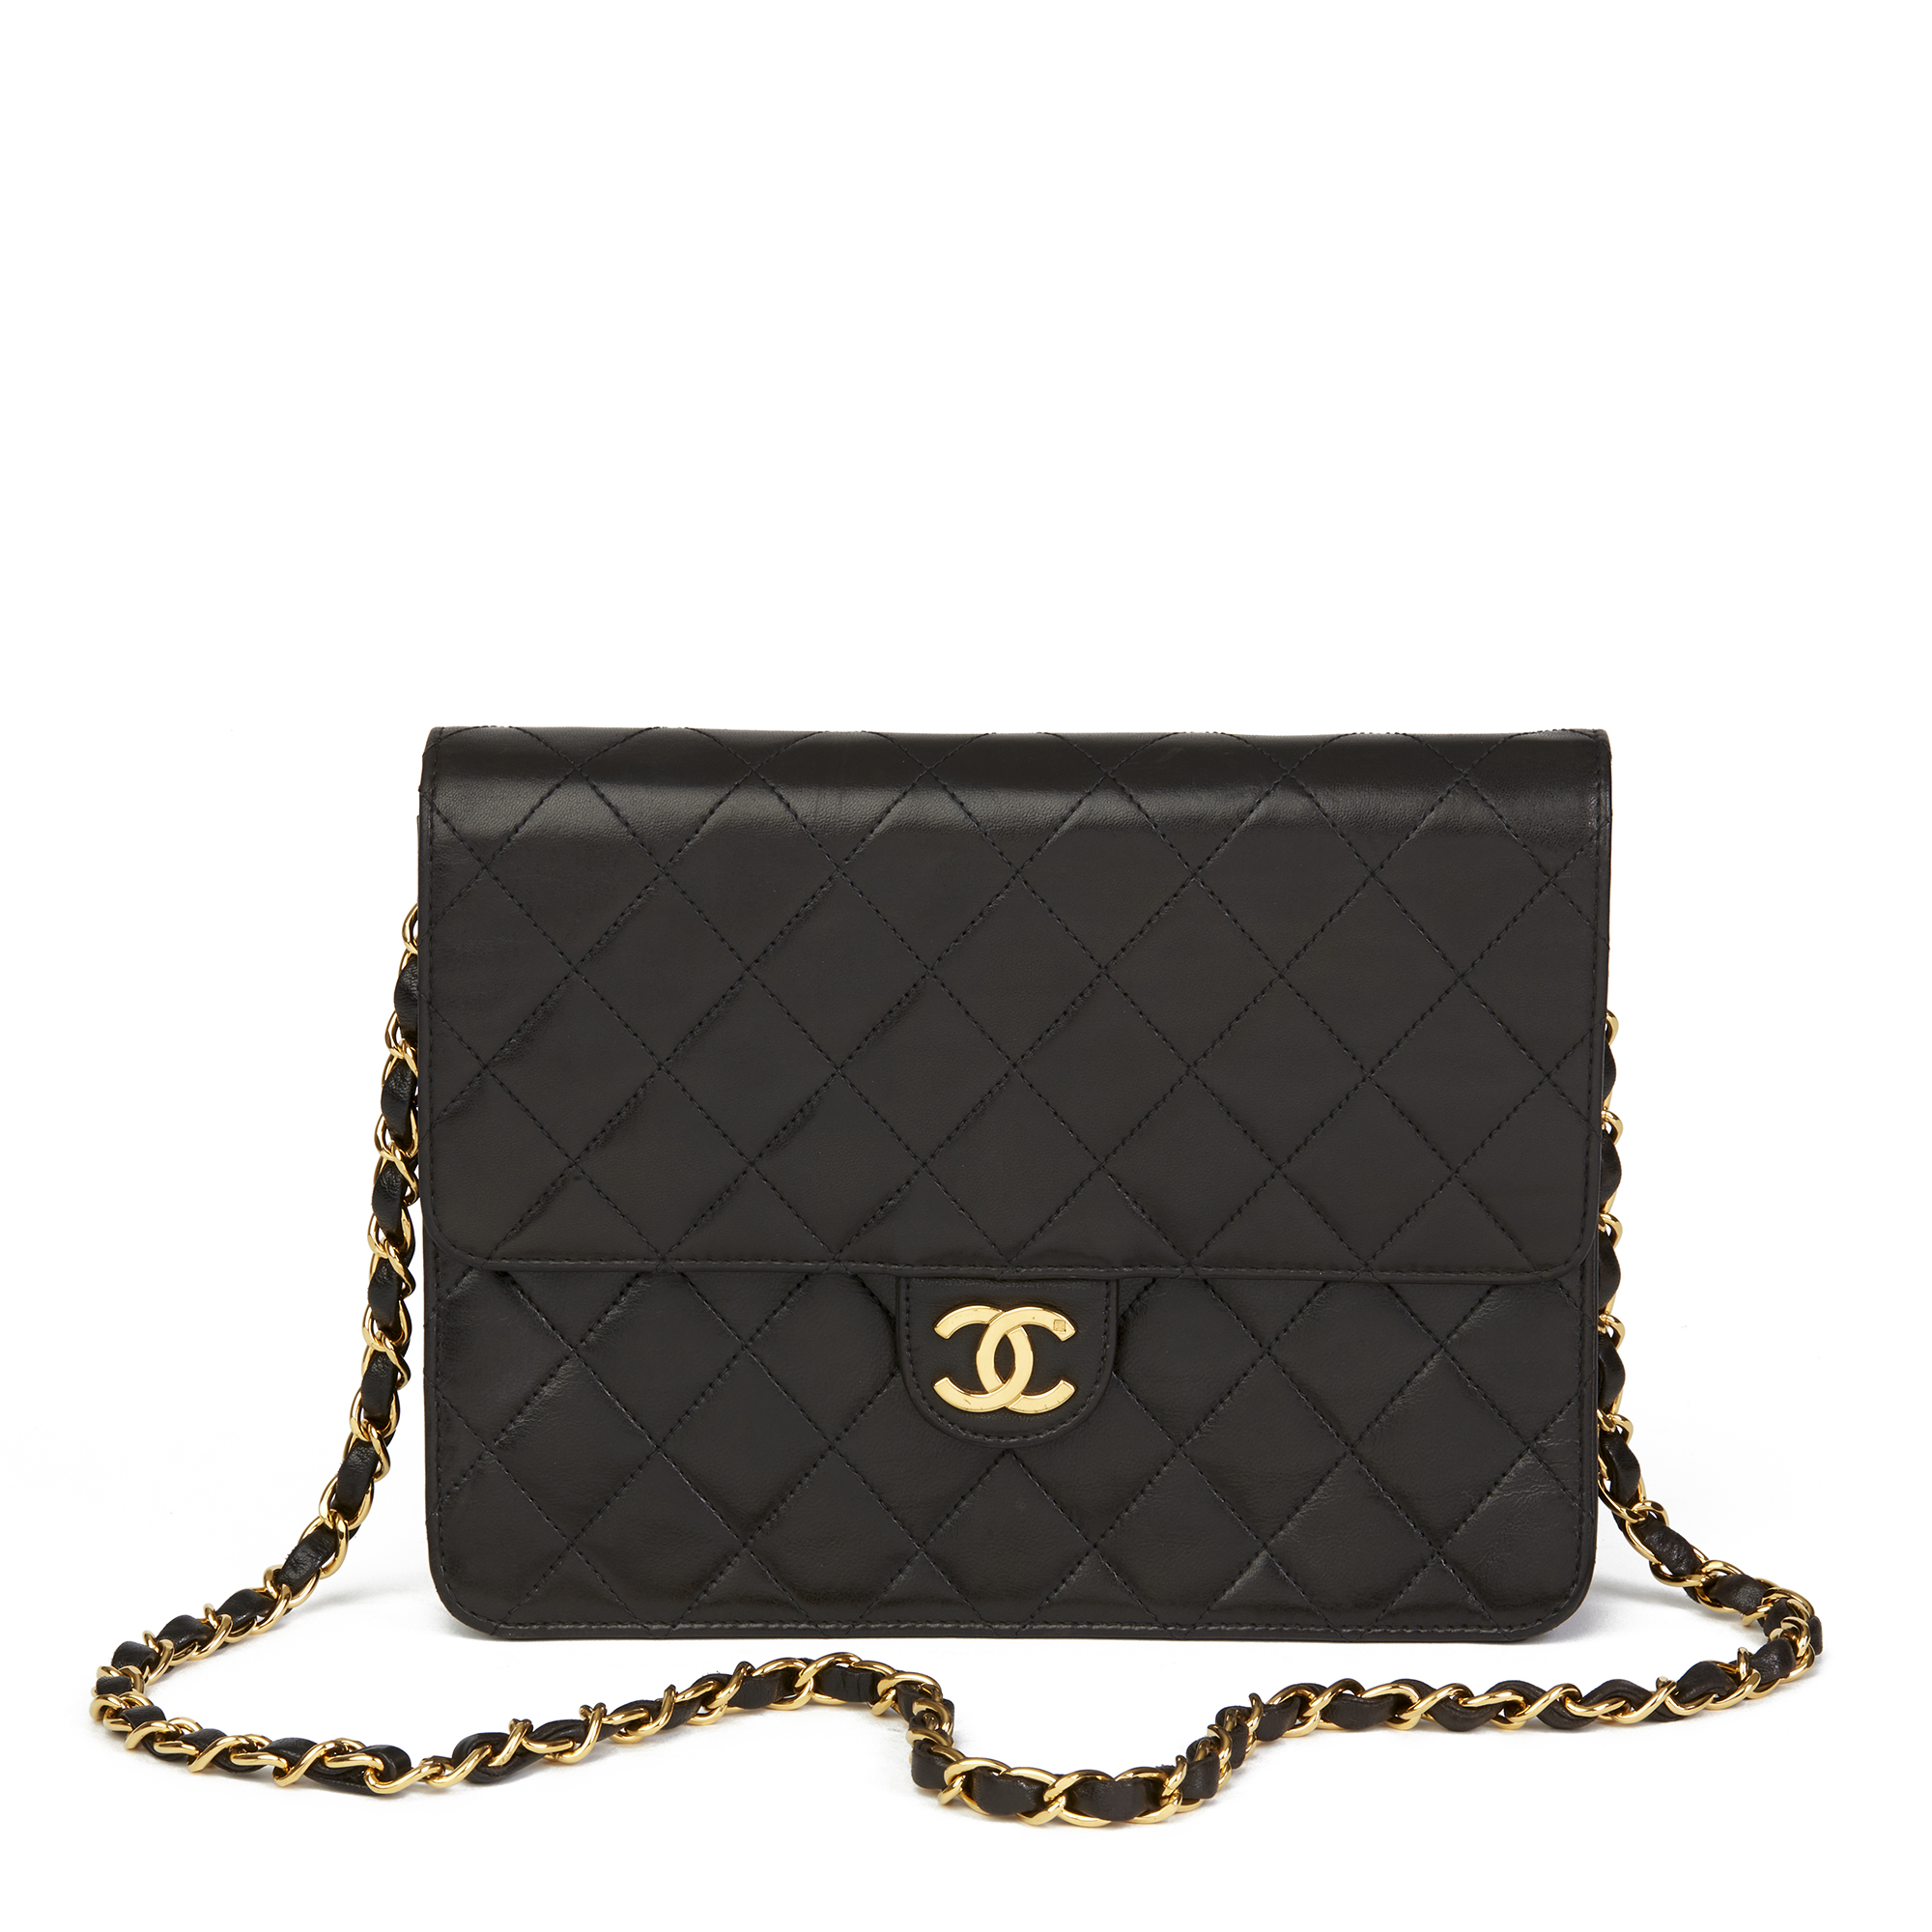 6d8a4ced0c90 CHANEL BLACK QUILTED LAMBSKIN VINTAGE SMALL CLASSIC SINGLE FLAP BAG ...